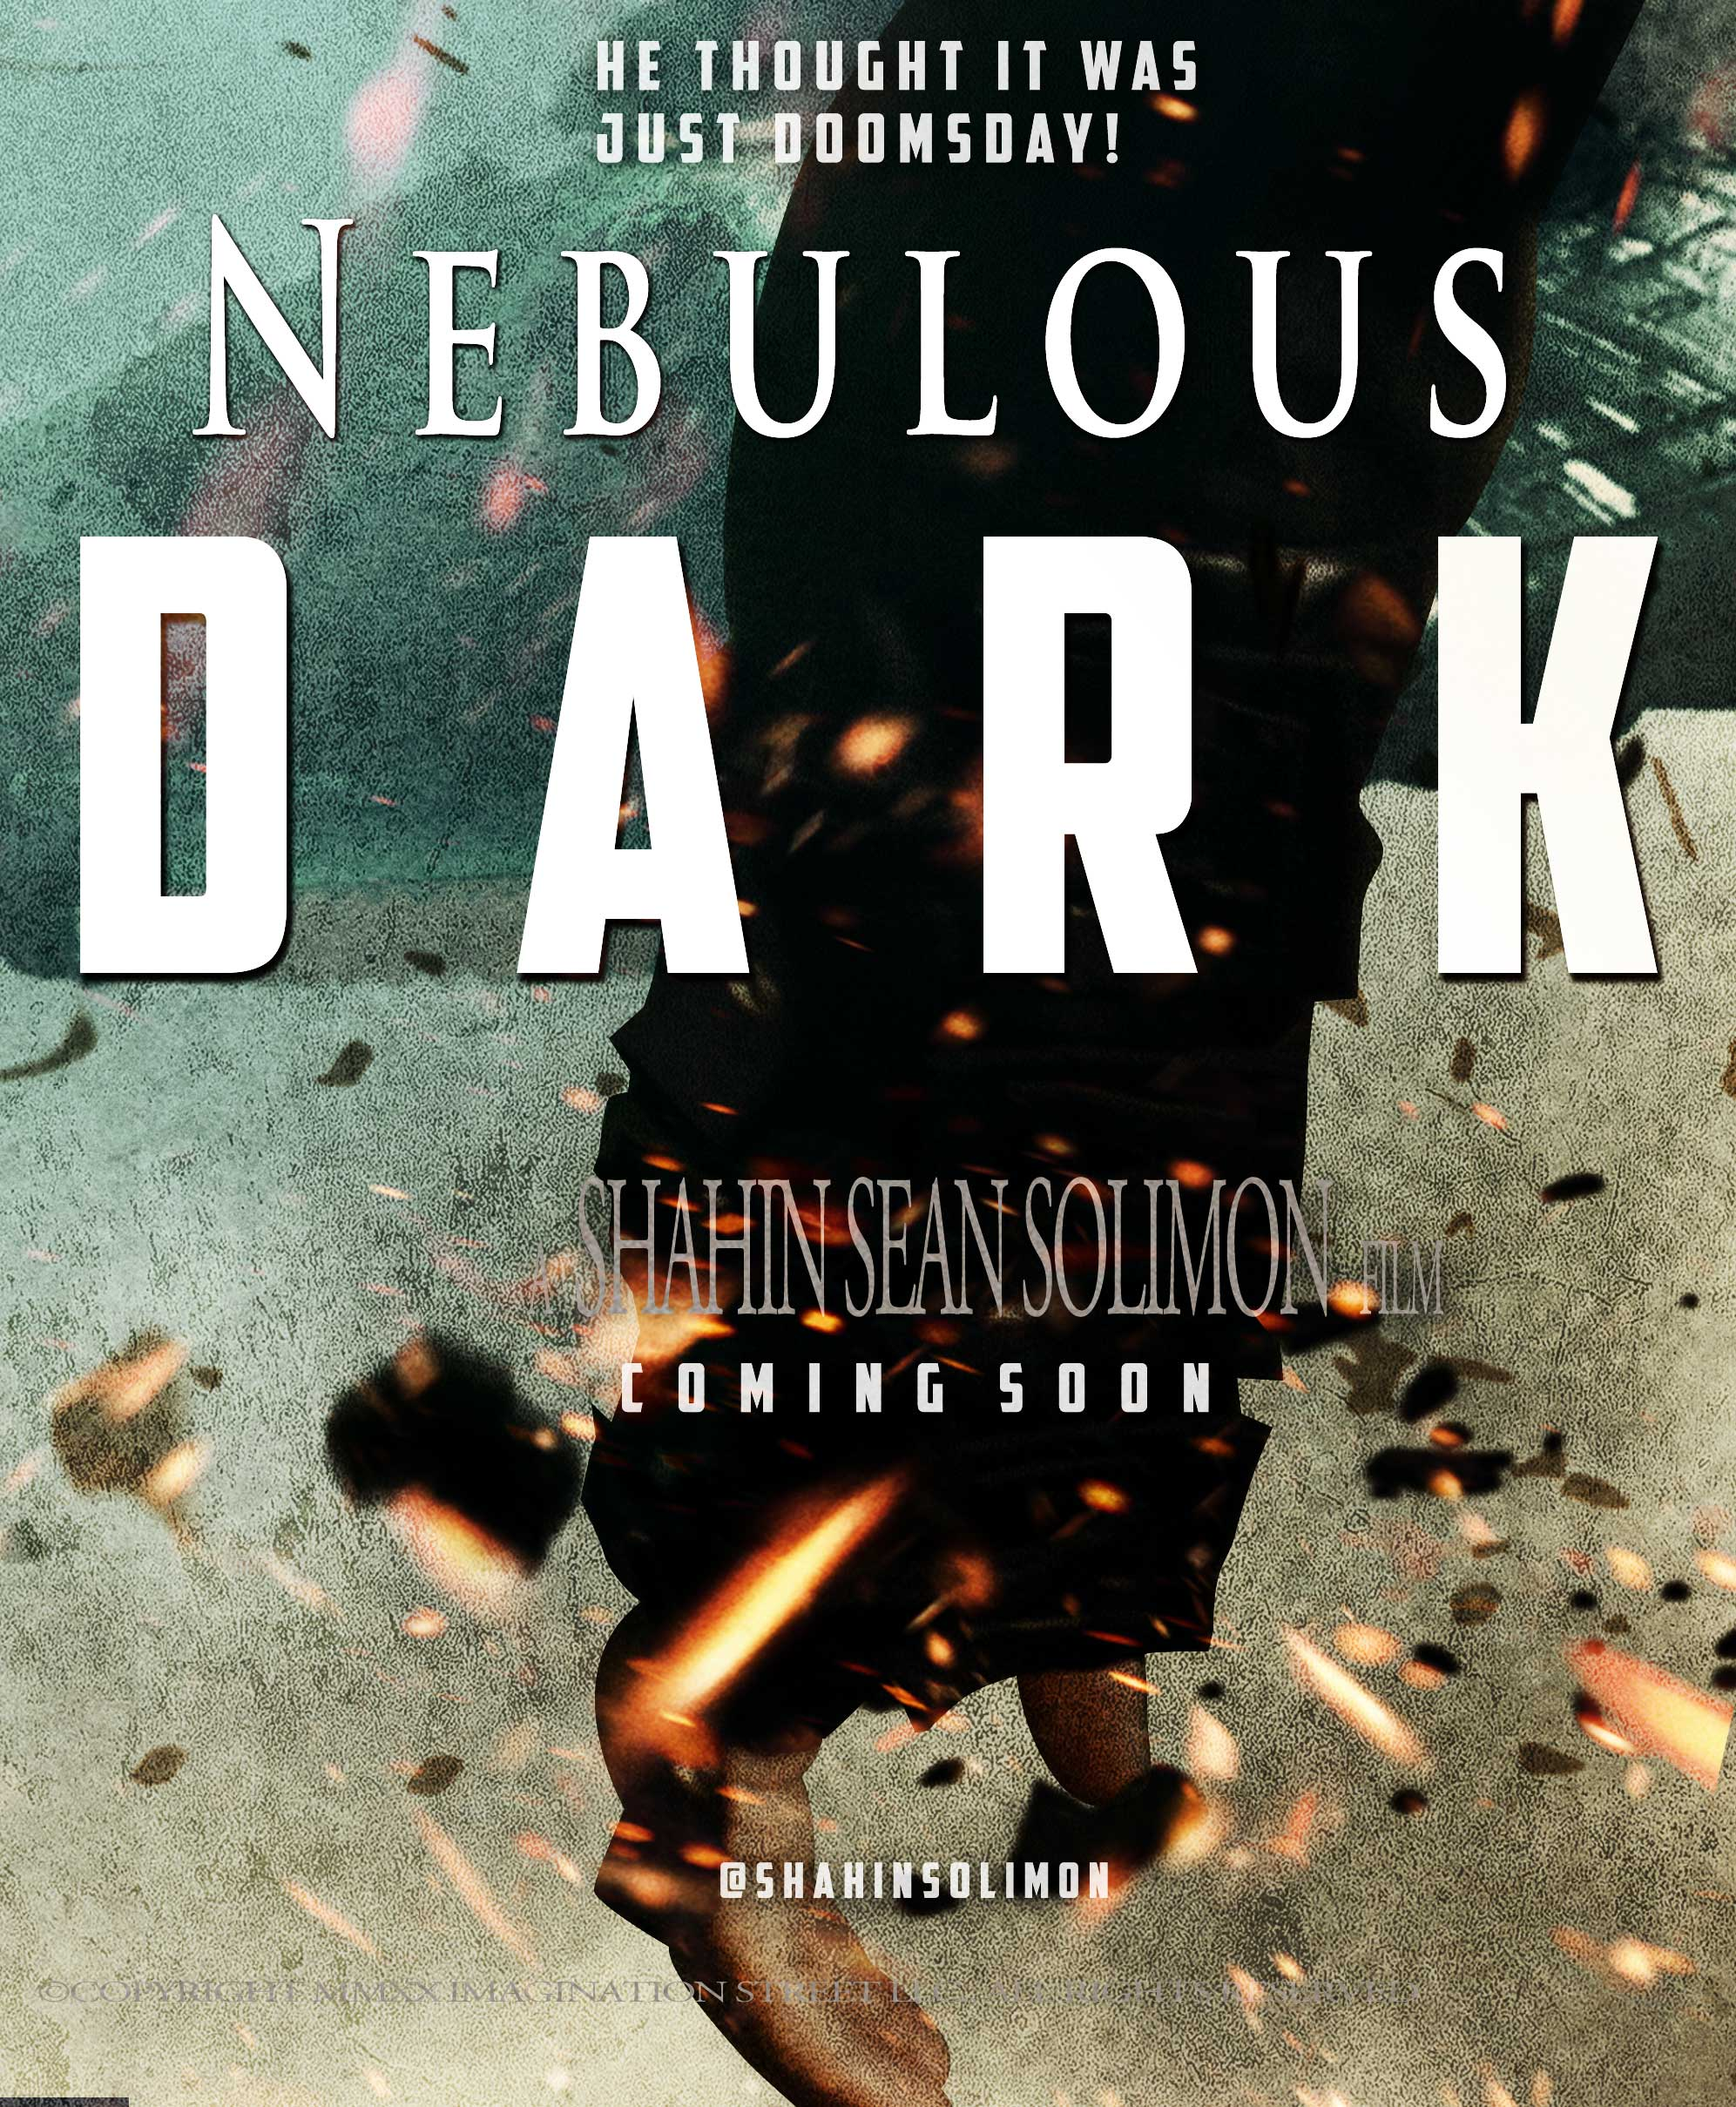 Nebulous-Dark-Keyart-BU-2-Poster-High-Rez-5-20-20